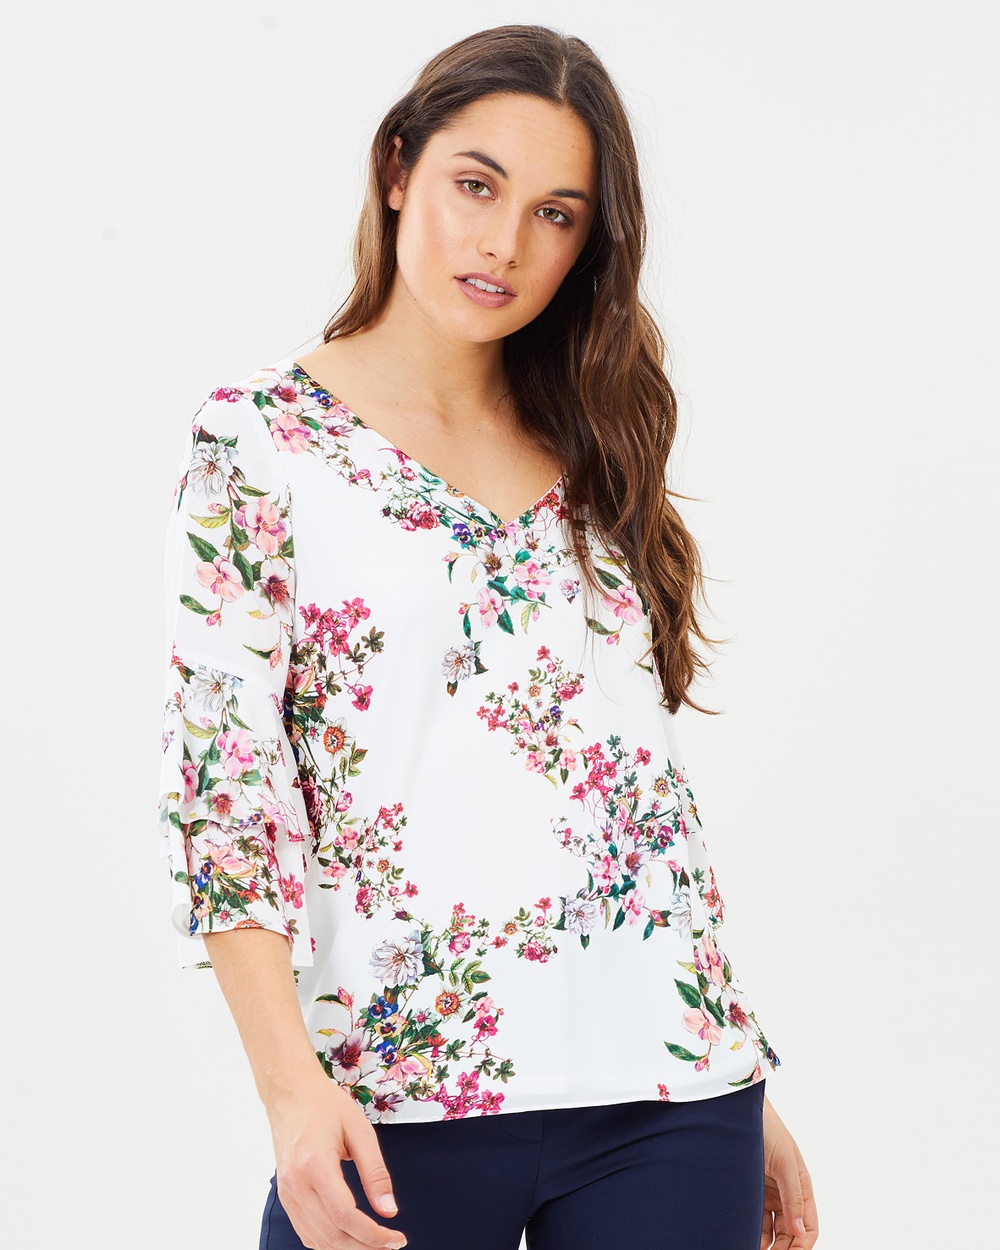 Wallis Floral Double Ruffle Top Tops Cream Floral Double Ruffle Top